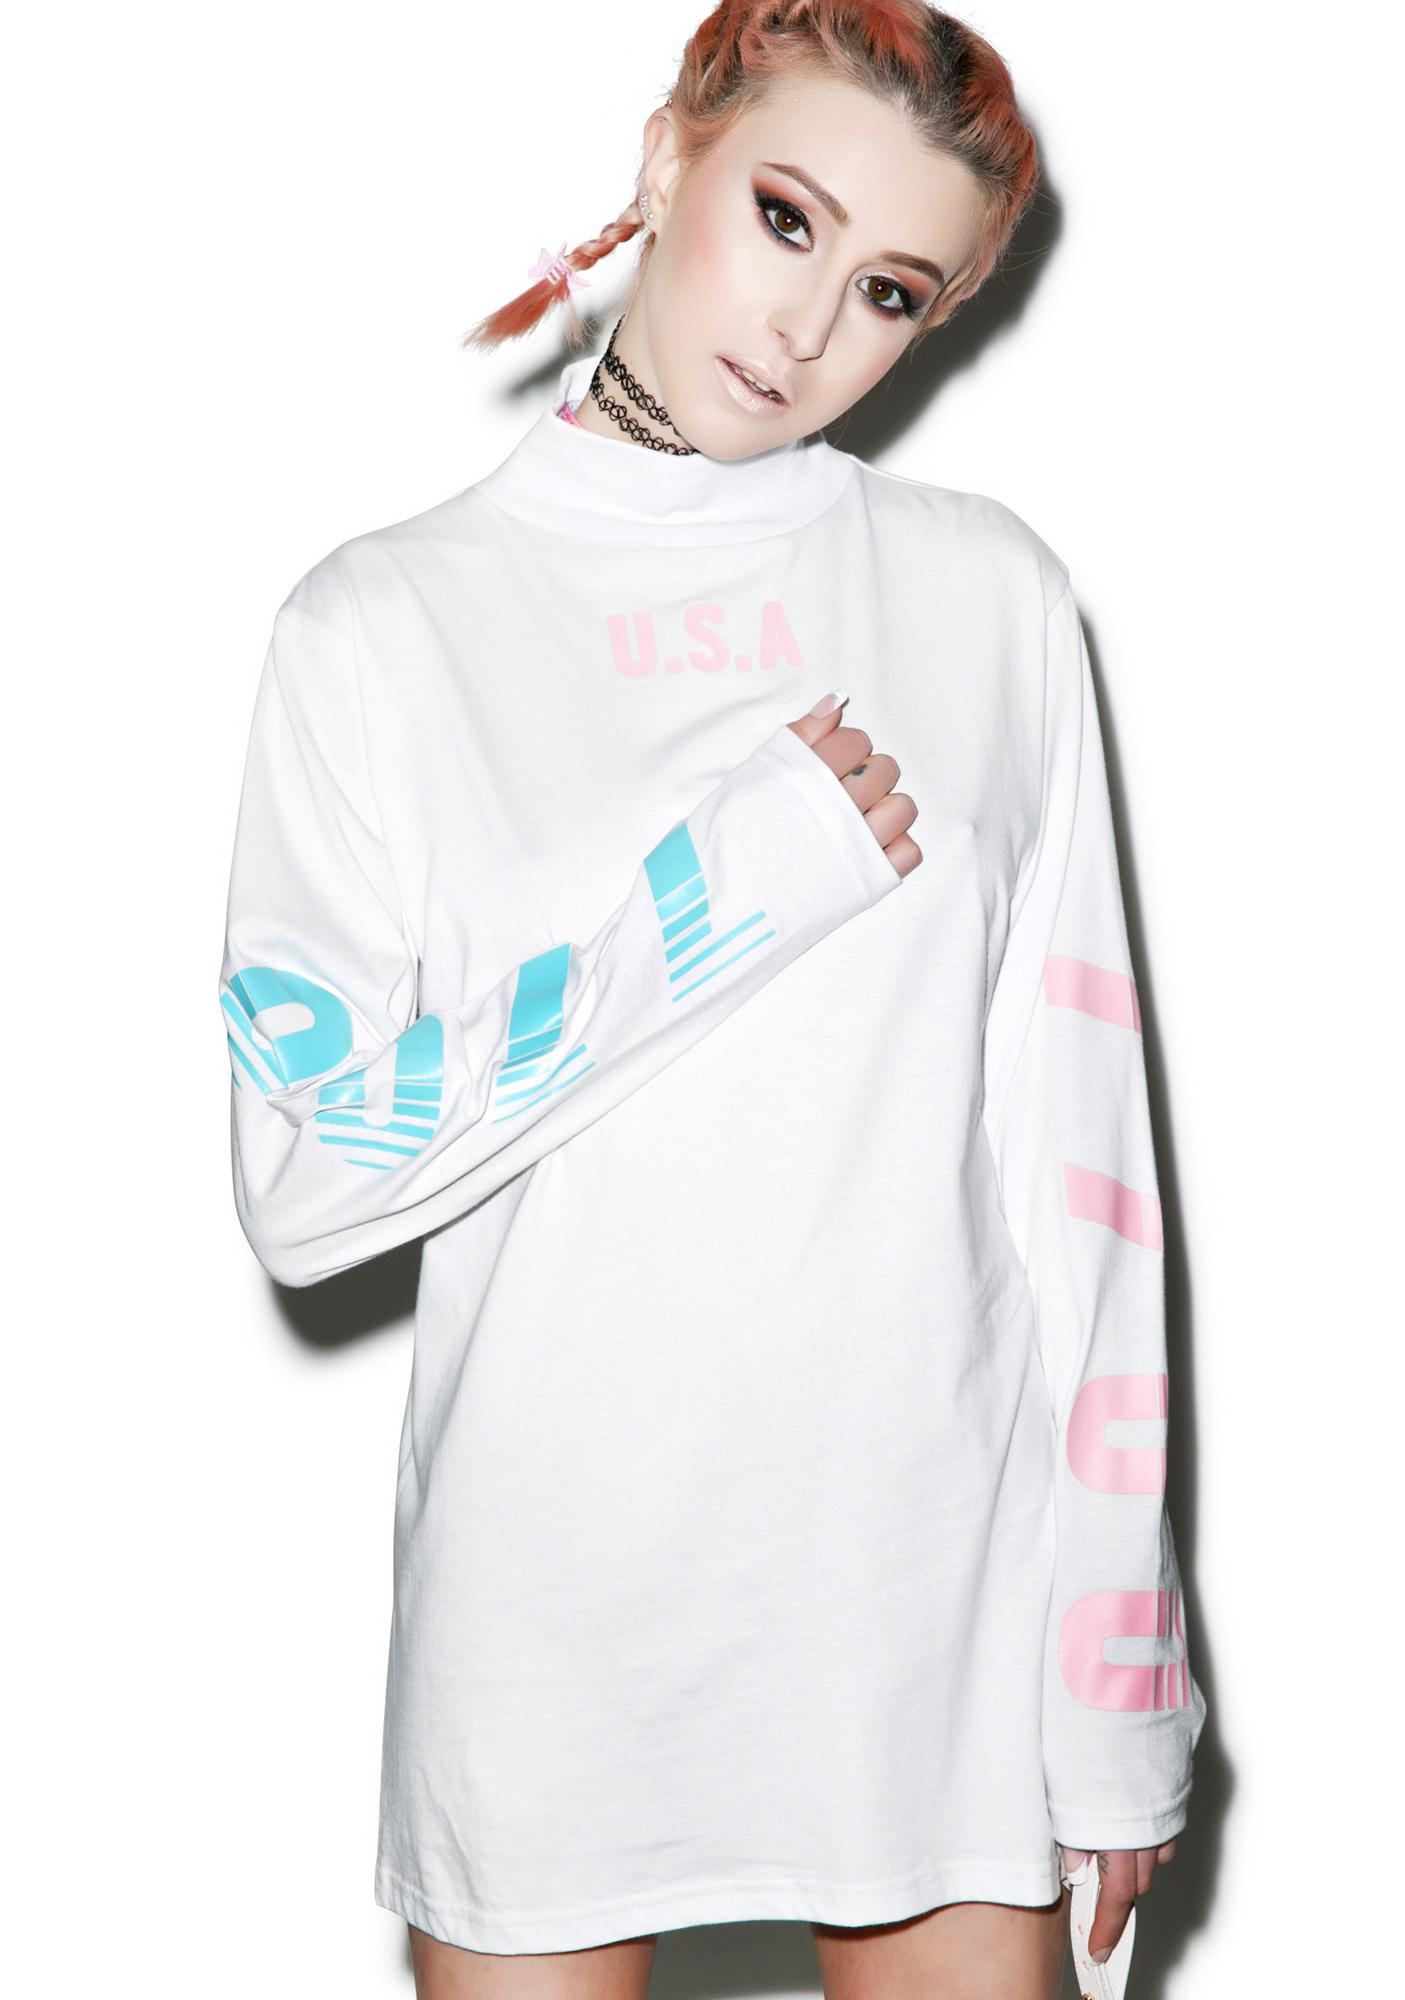 Joyrich 7700 Highneck Long Sleeve Tee